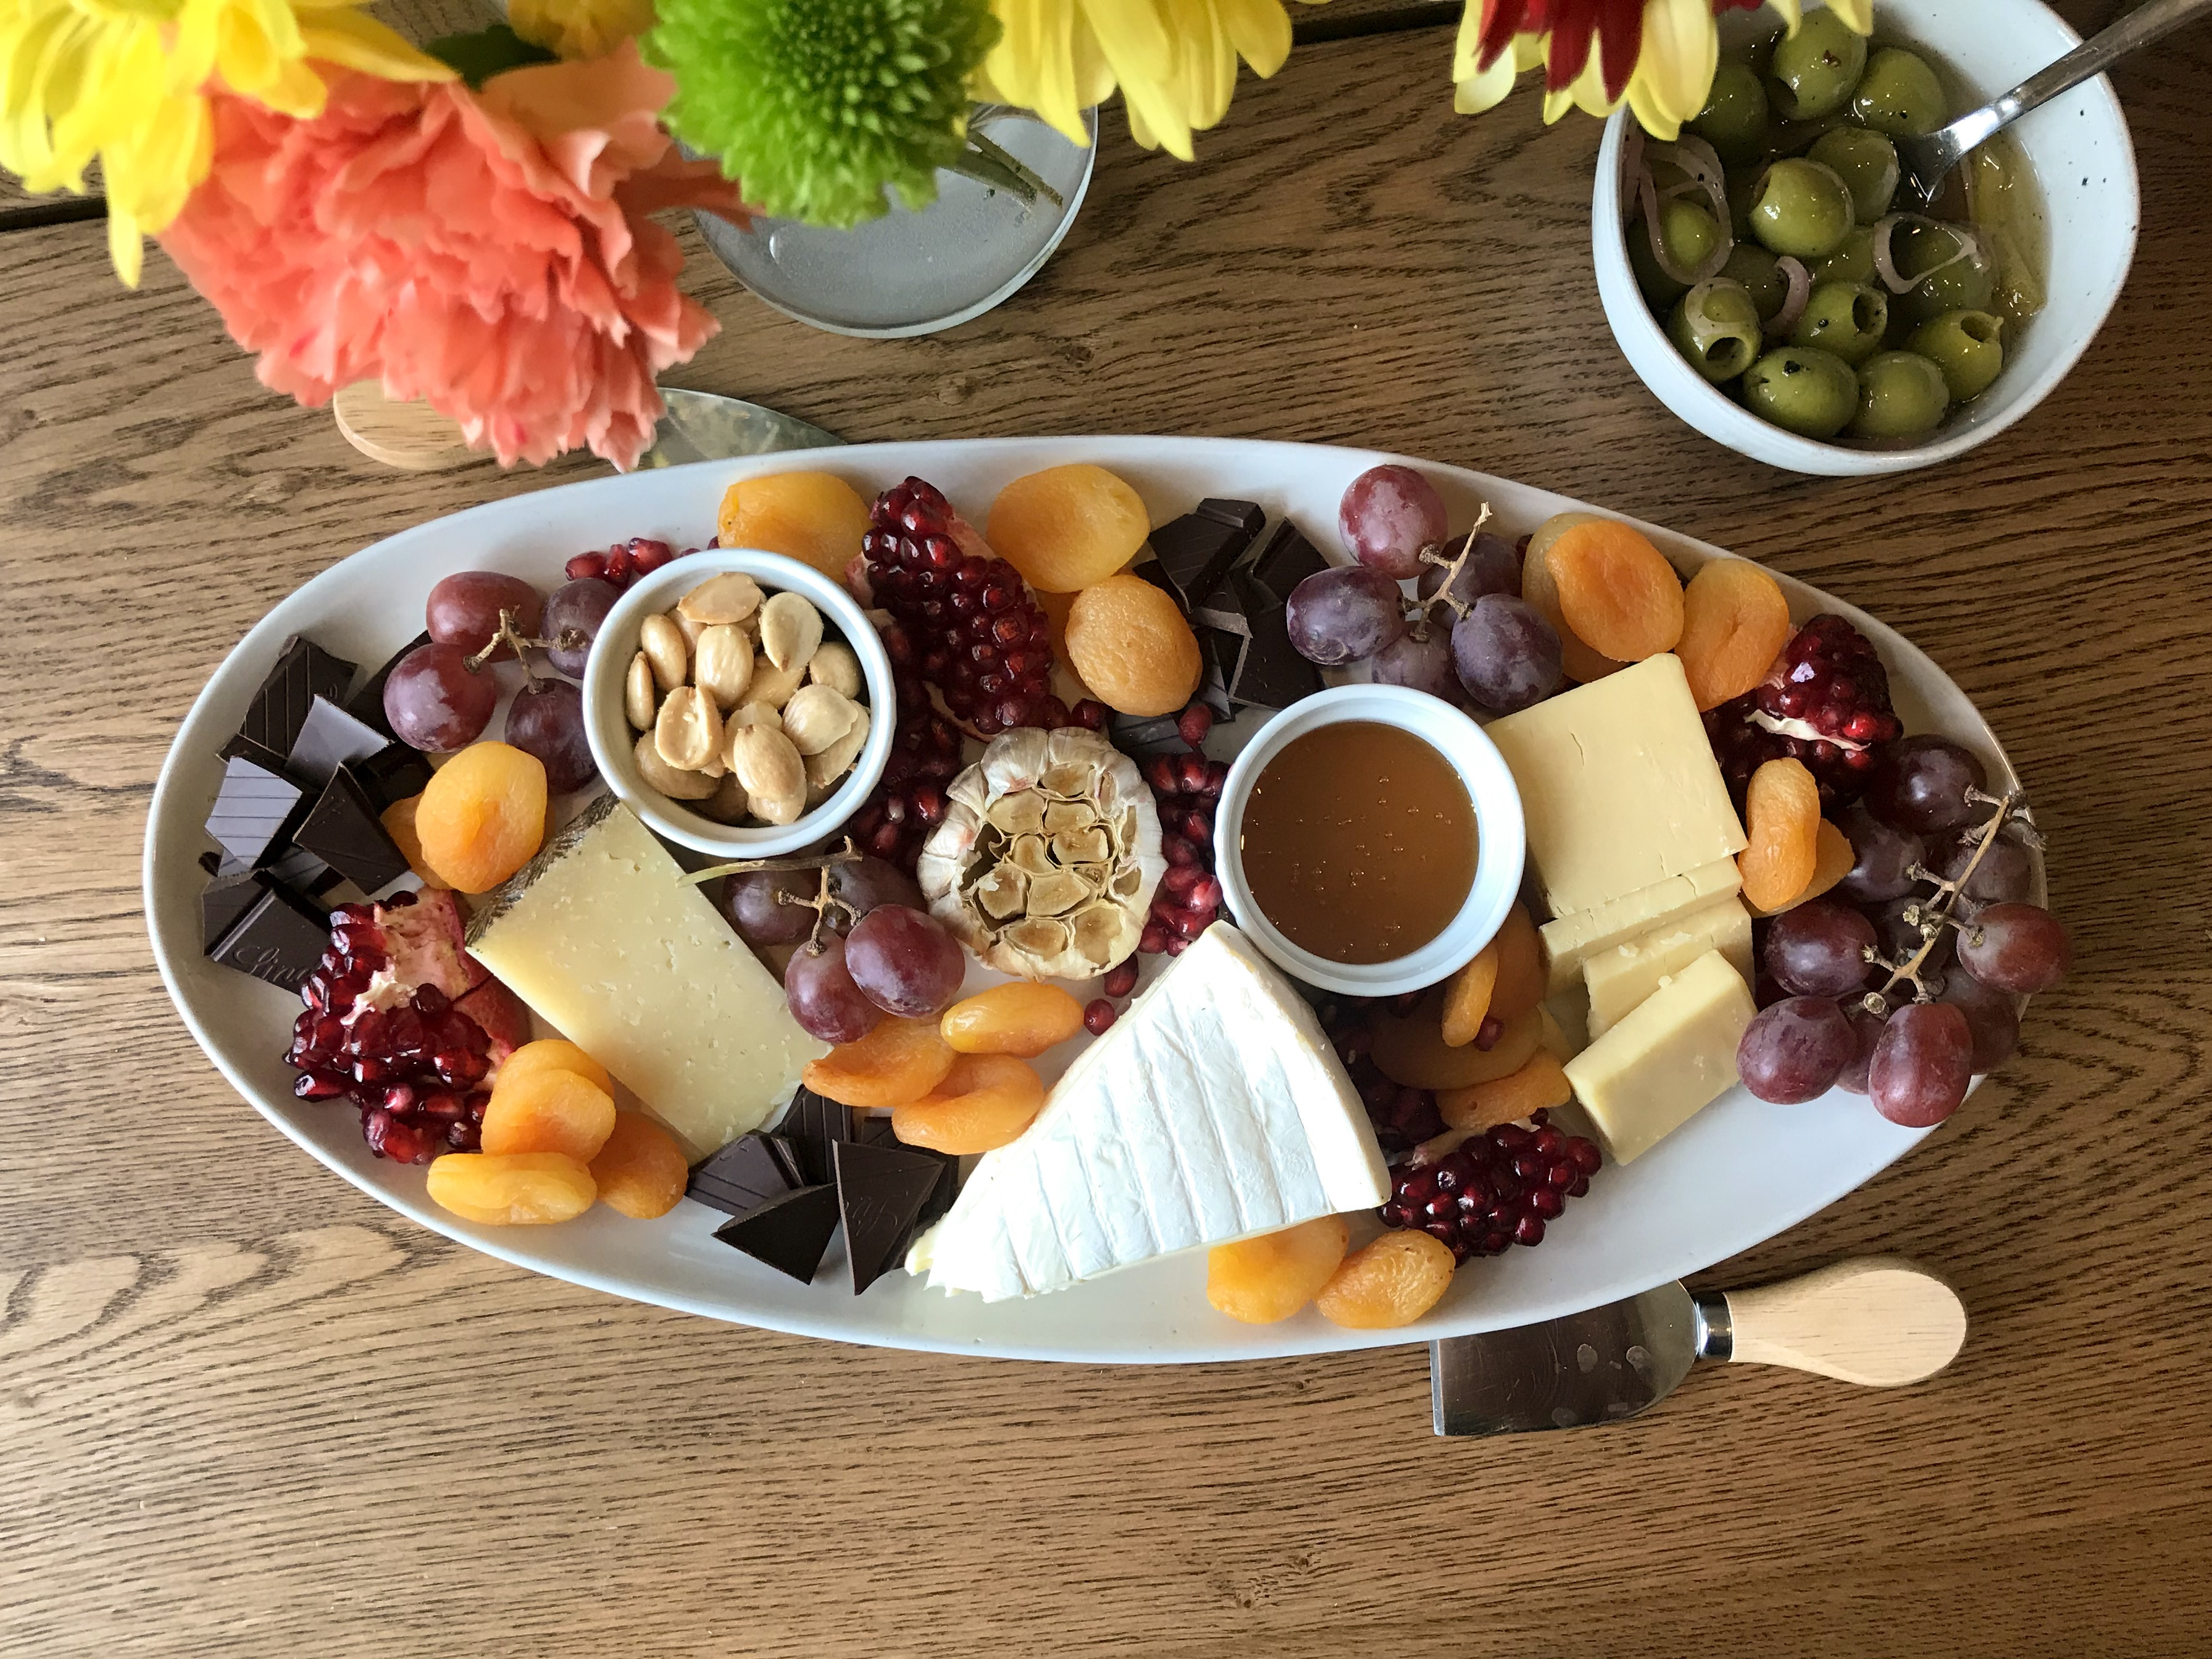 Boy have I got a beautiful cheese plate for you.